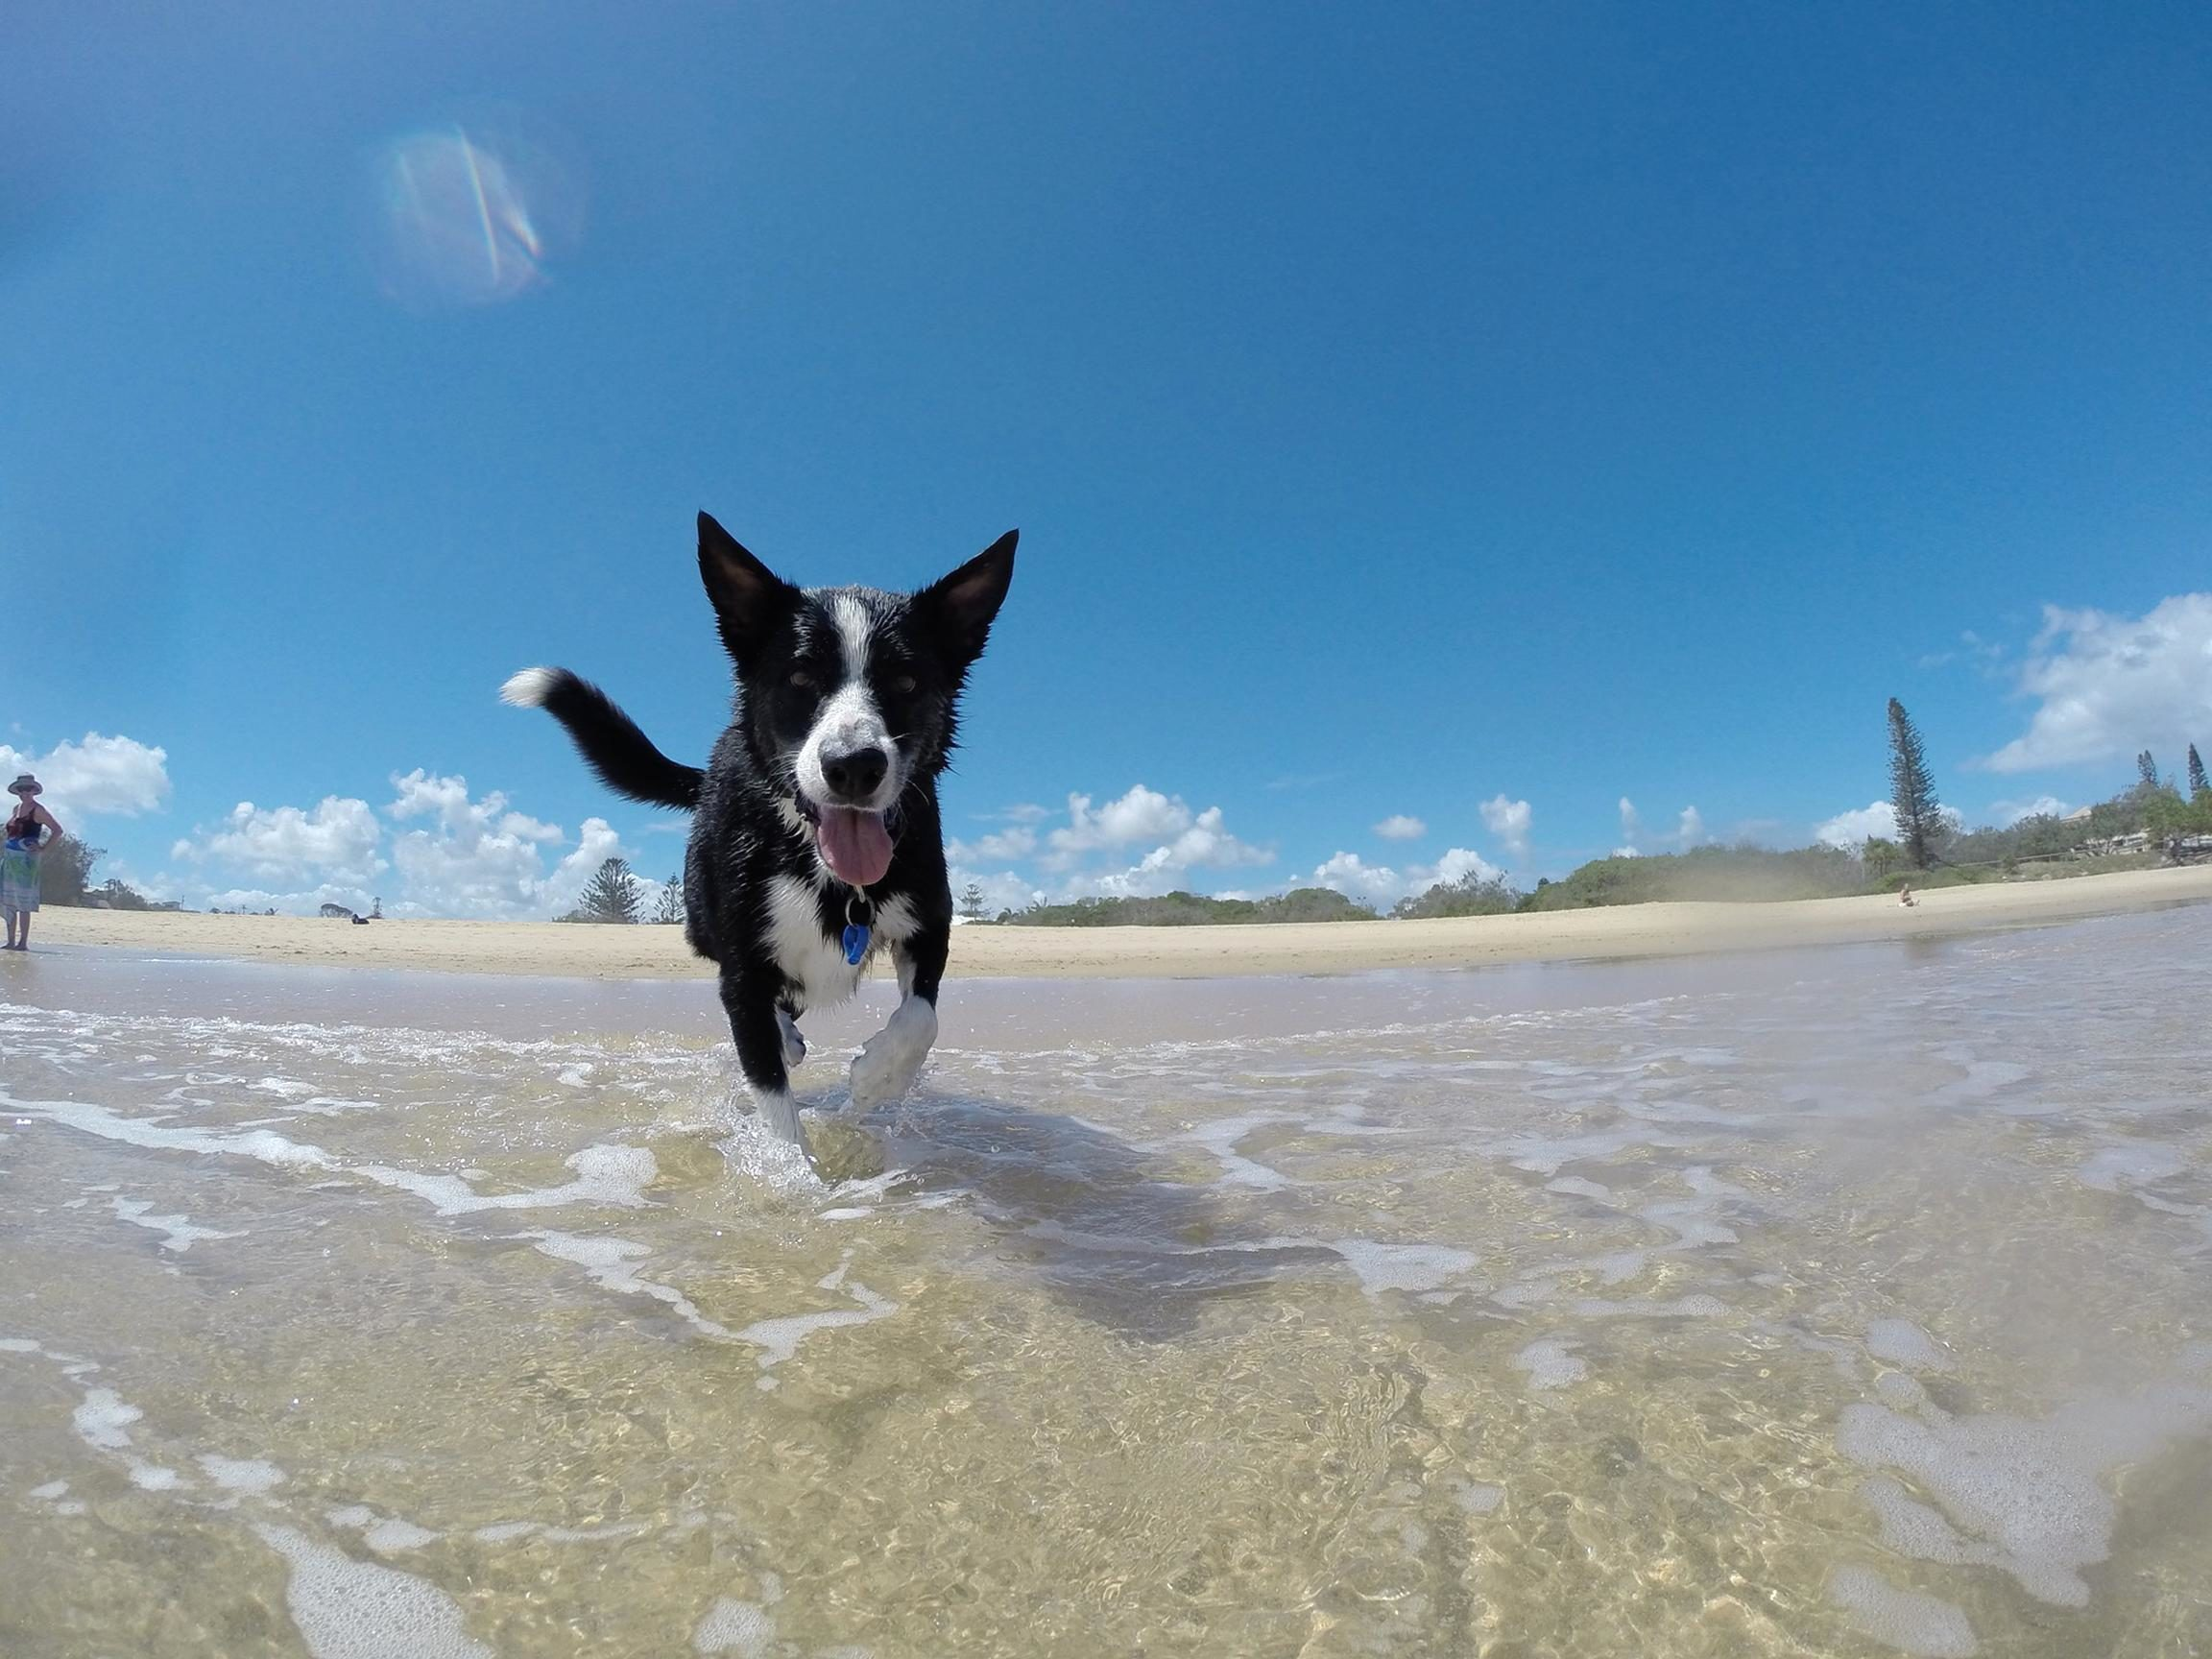 Free picture: water, beach, sand, sky, summer, sea, dog